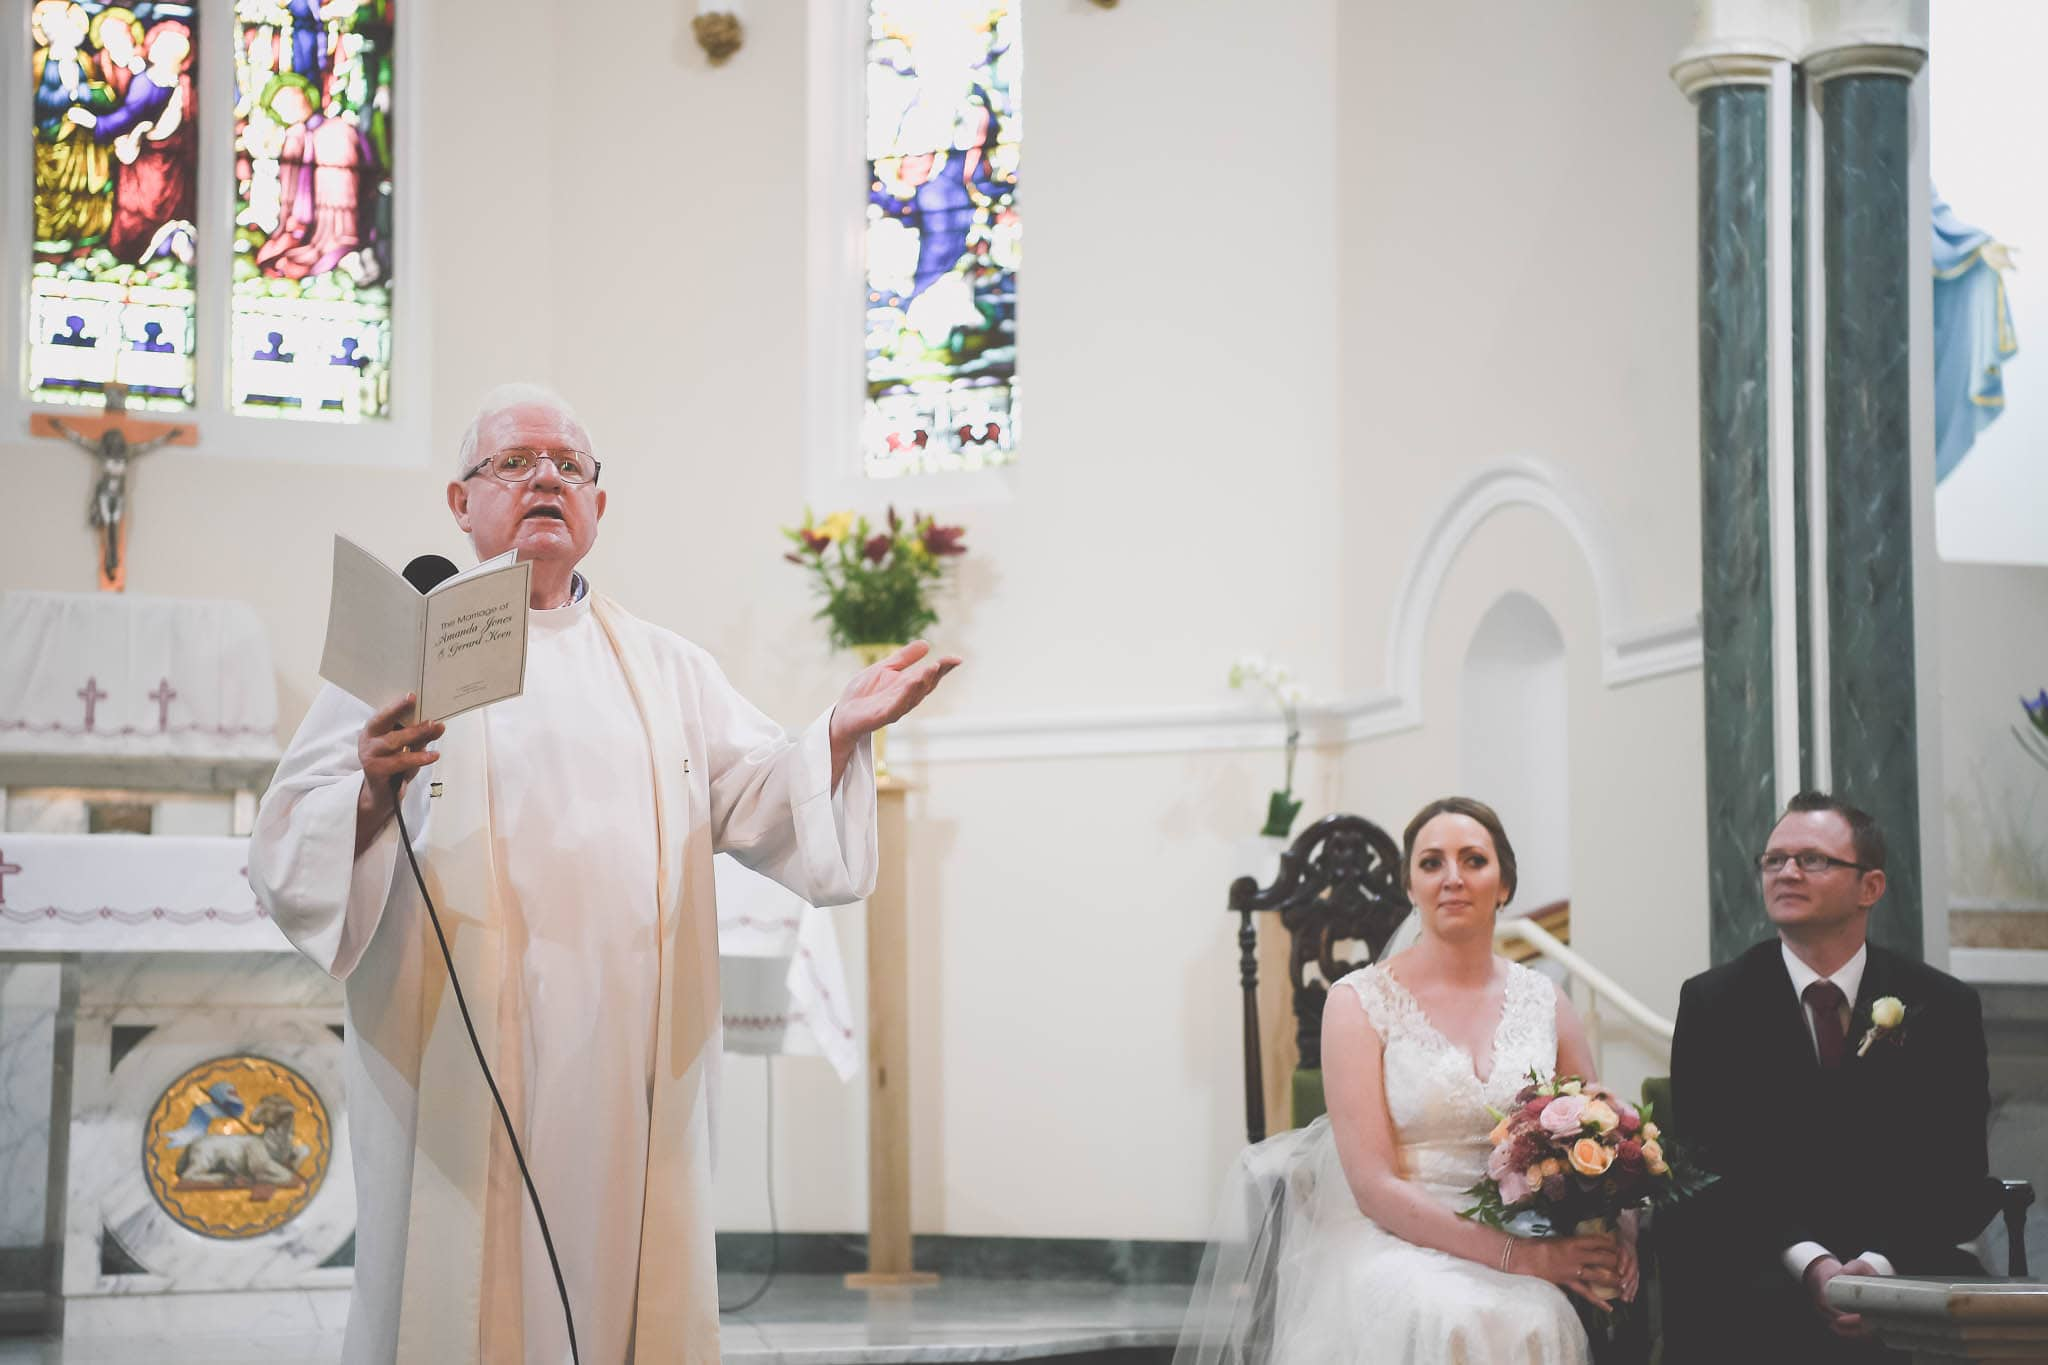 Melbourne wedding photographer Pause The Moment capture an image of a priest delivering a sermon at a wedding.